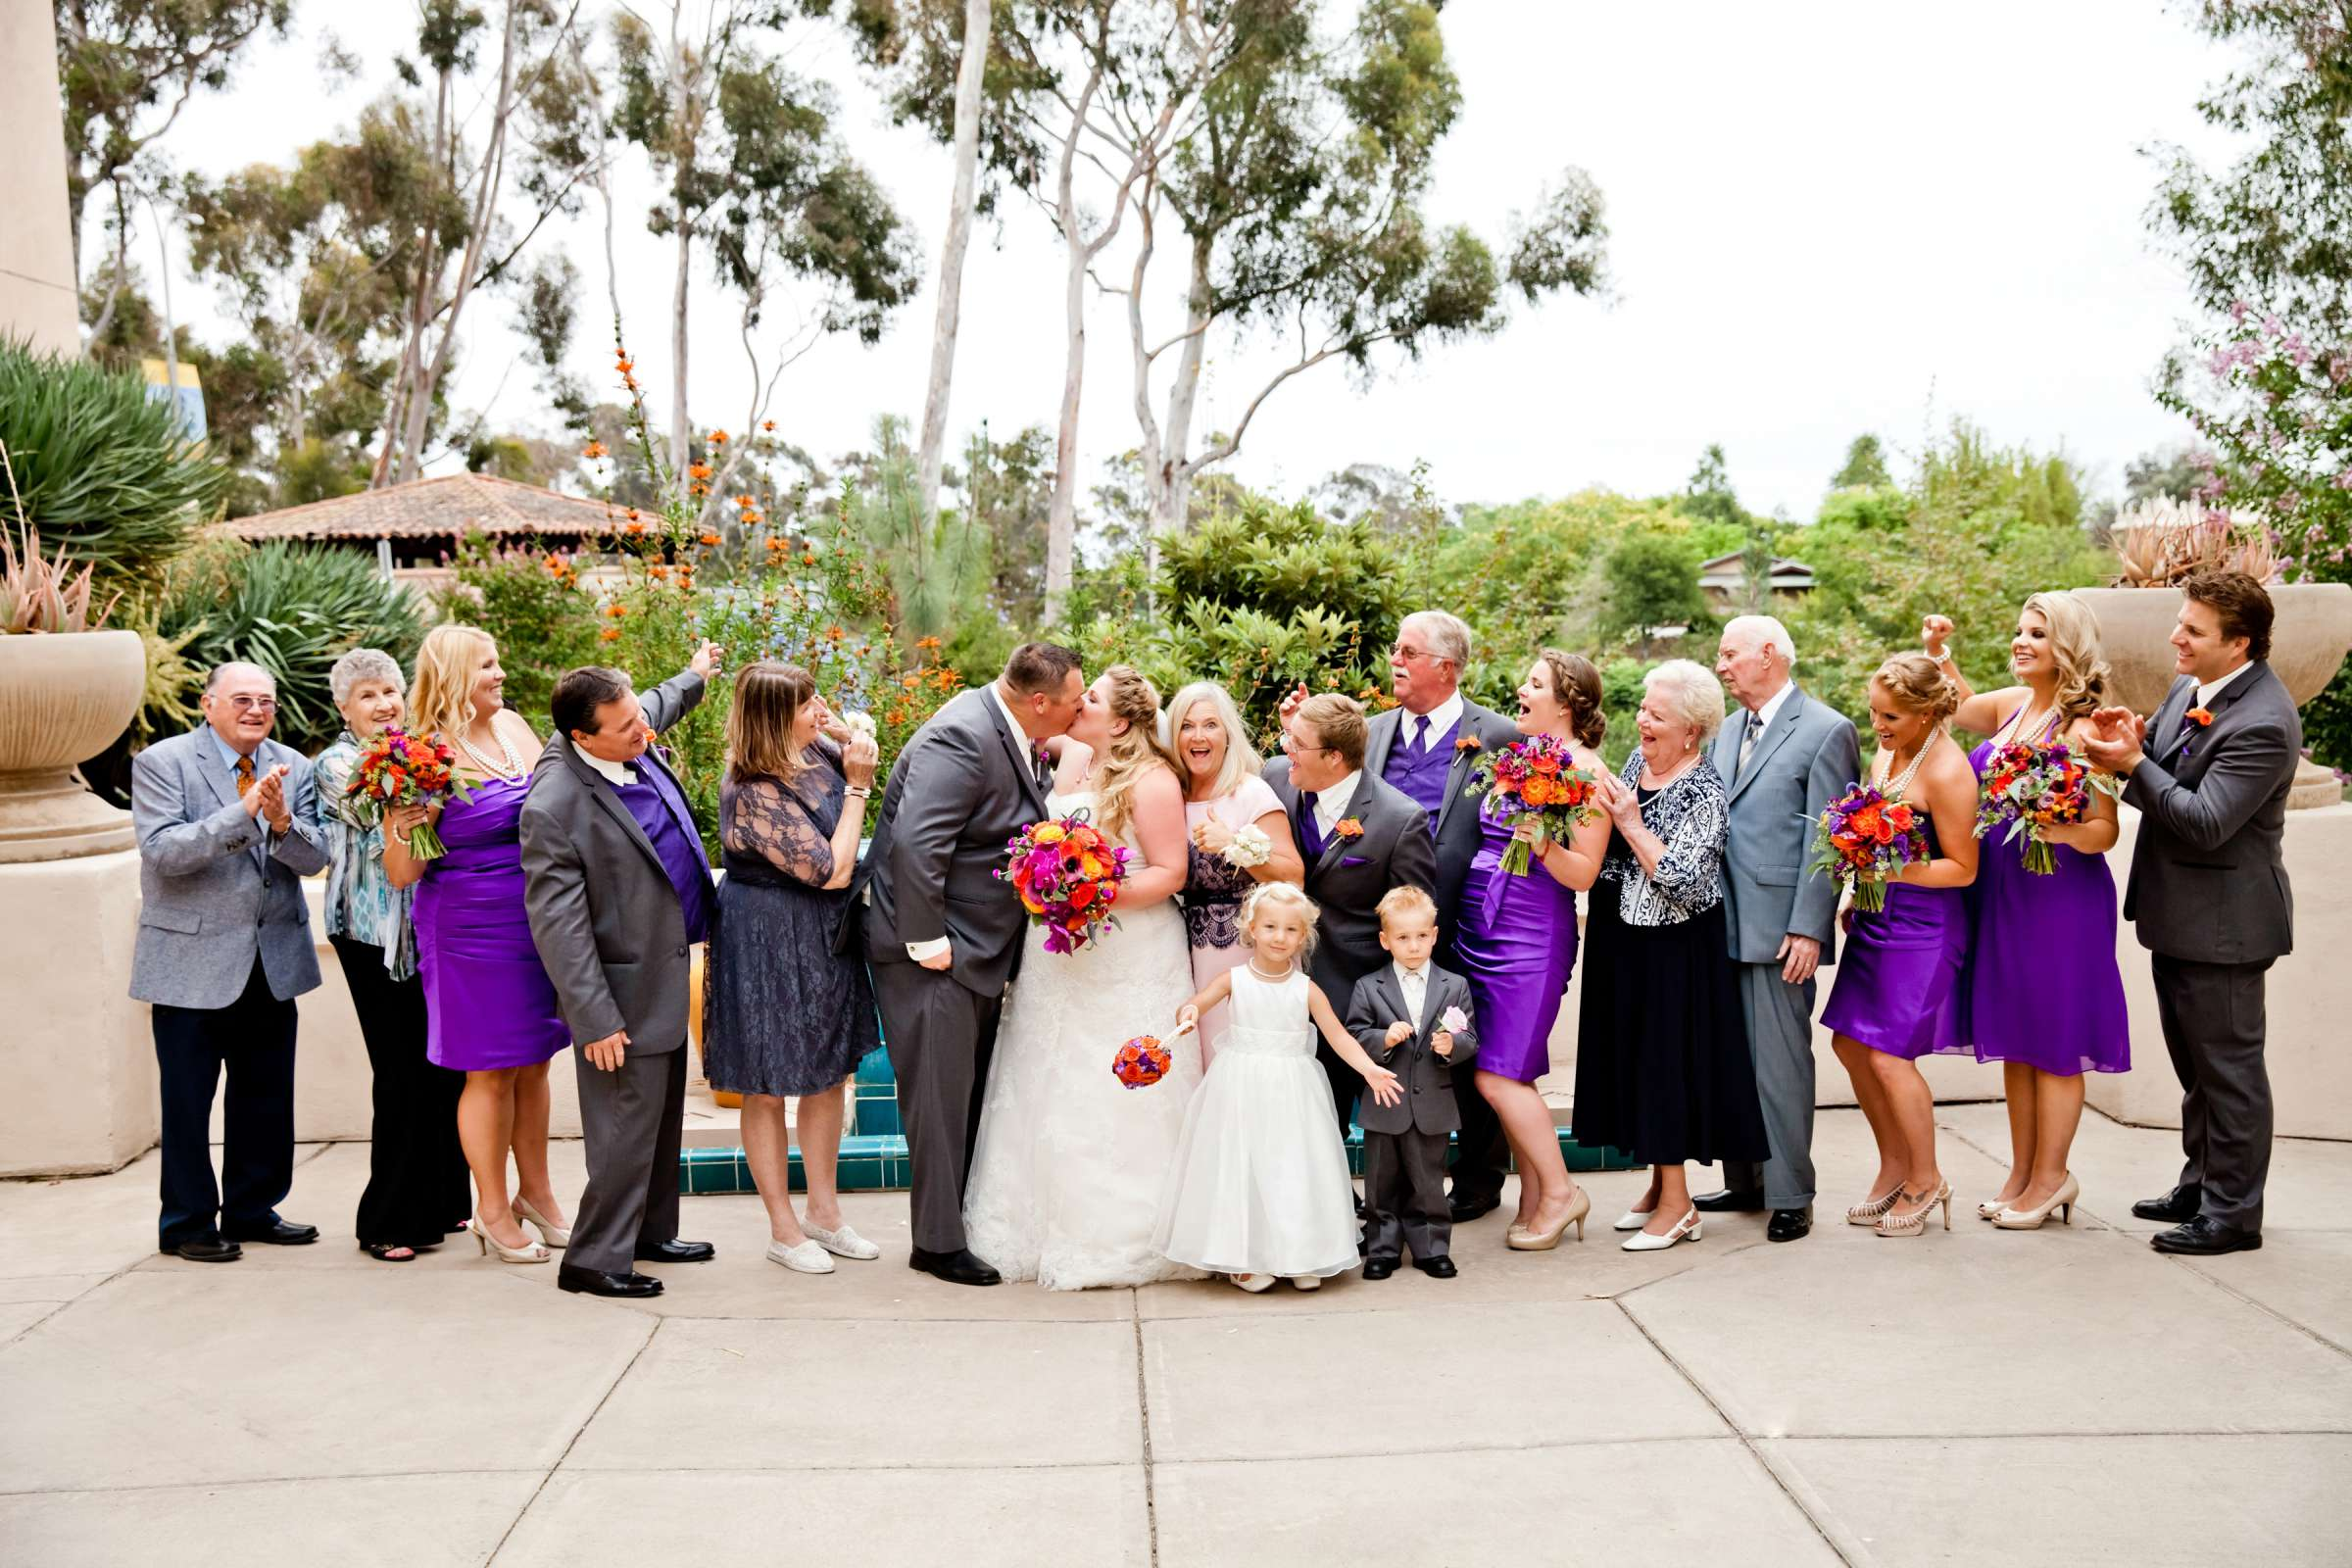 The Prado Wedding coordinated by Monarch Weddings, Eileen and Robbie Wedding Photo #49 by True Photography